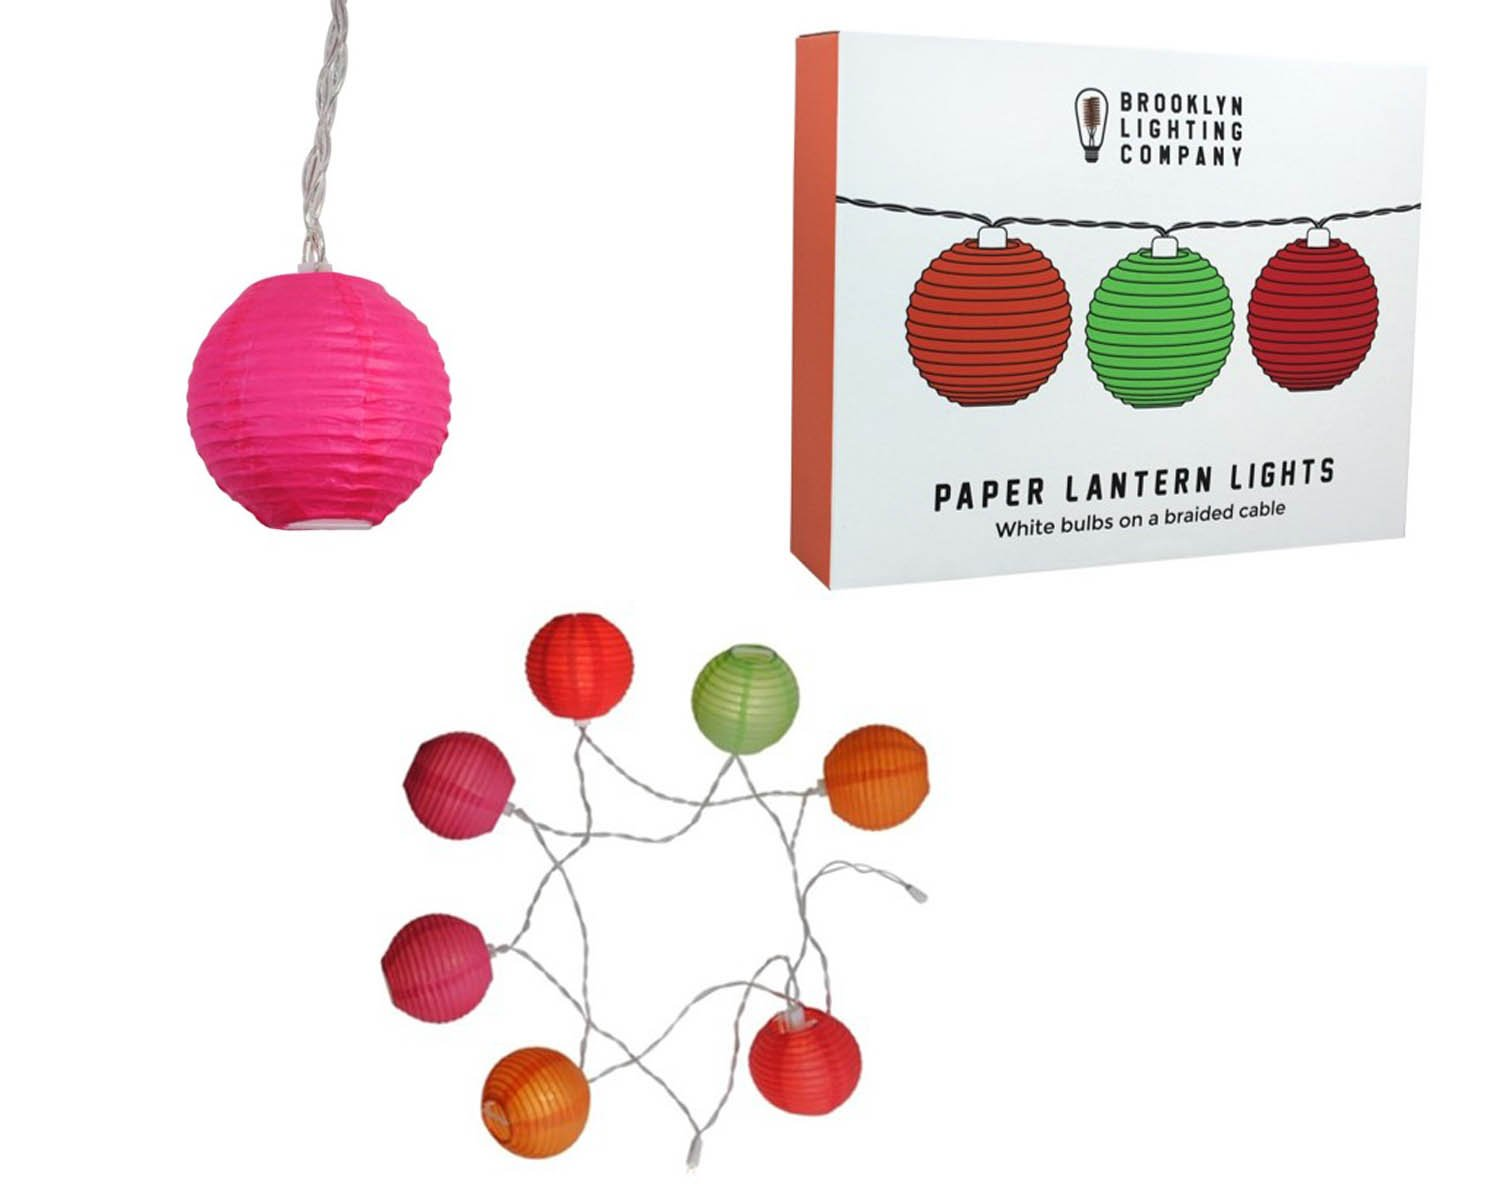 Brooklyn Lighting Company 9 LED Multi Color Paper Lantern String Lights Decorative String Lights, Battery Operated String Lights, Party Decor Supplies for Indoor/Outdoor, 6 Fee (Colored Paper Lantern) by Brooklyn Lighting Company